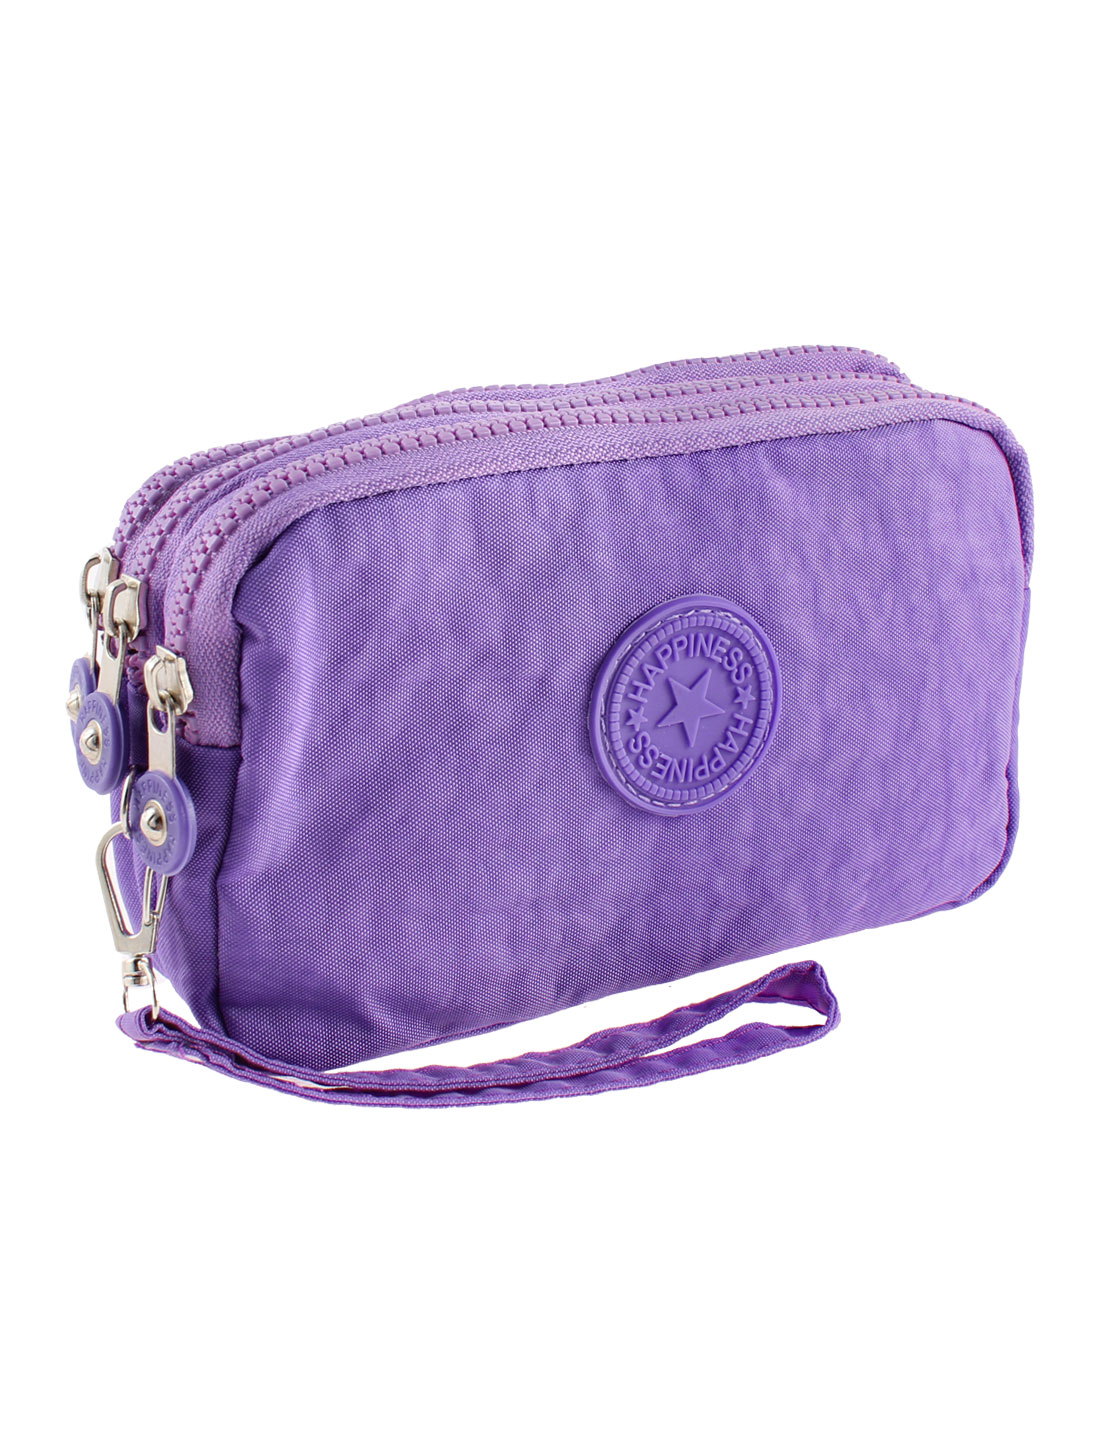 Lady Zipper Closure Purse Cash Coin Cards Bag Handbag Purple